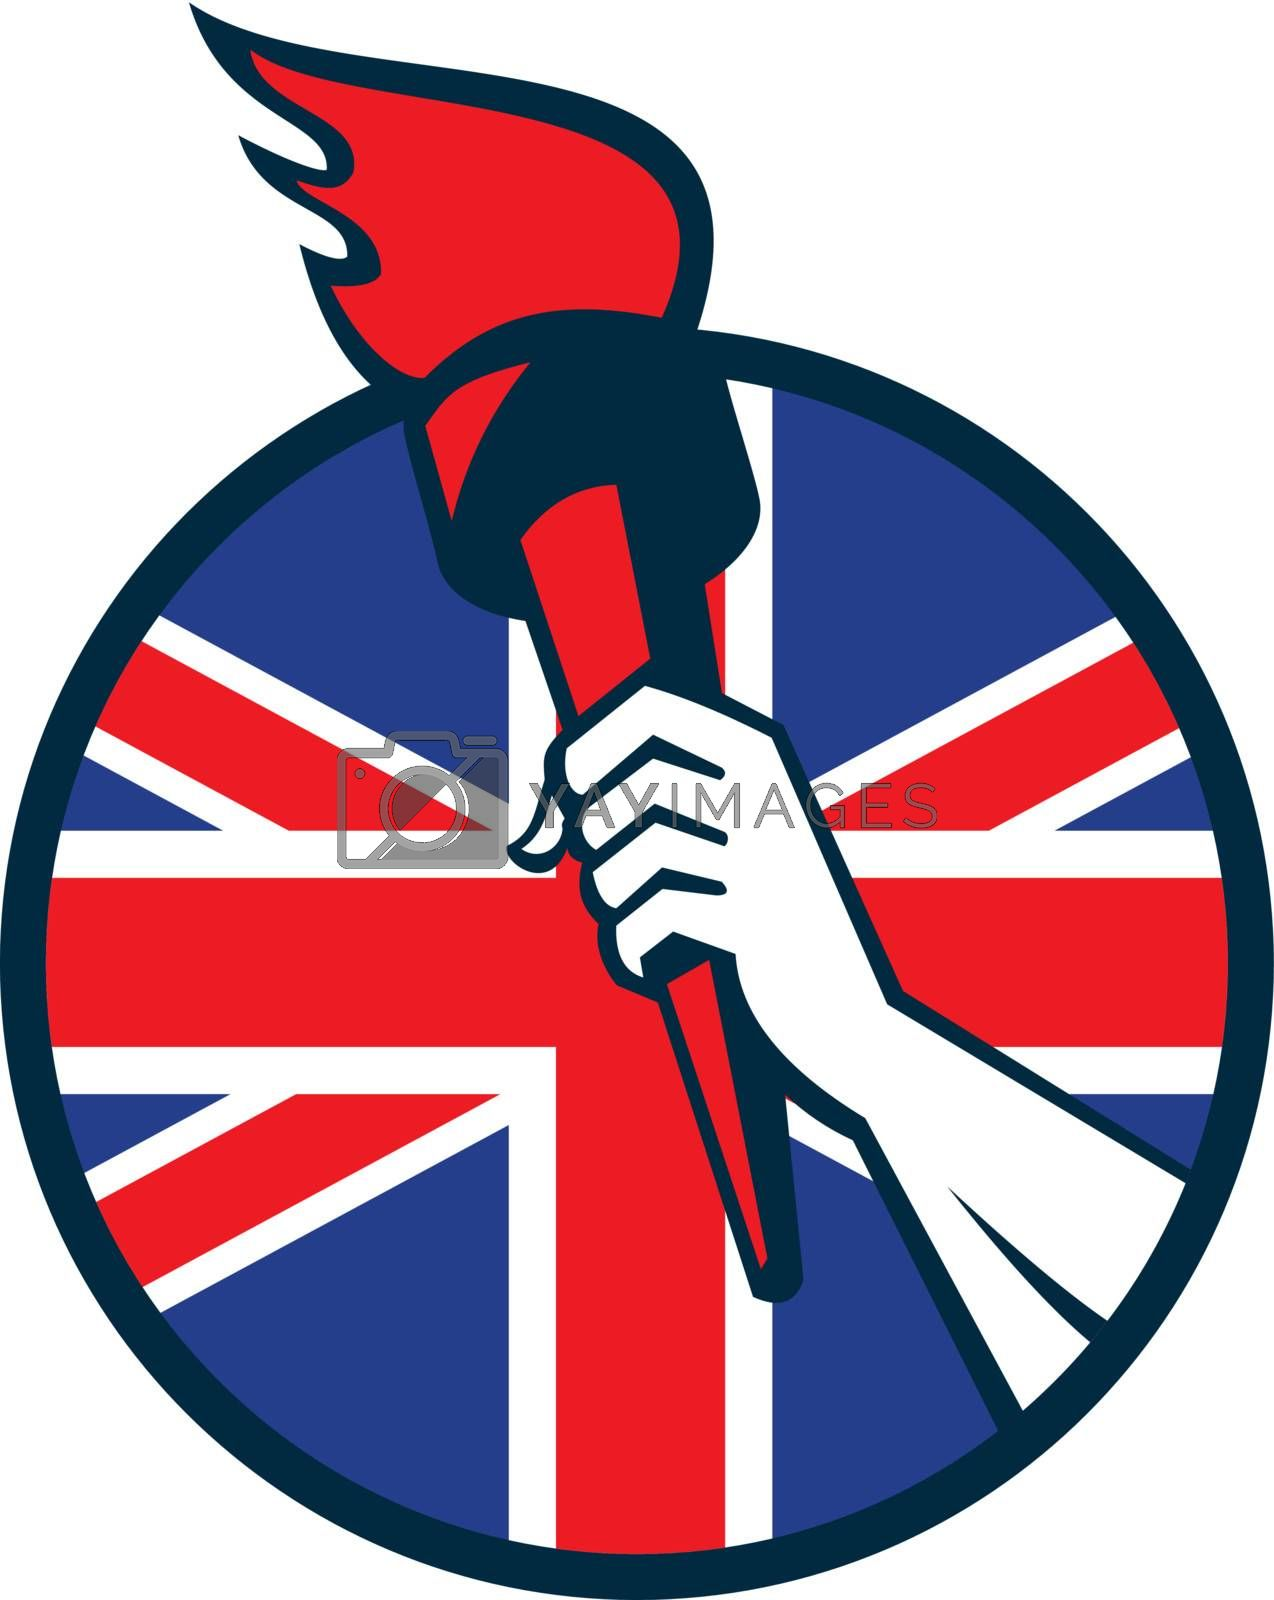 Retro illustration of an athlete hand holding a flaming torch with union jack Great Britain British flag set inside circle on isolated white background.